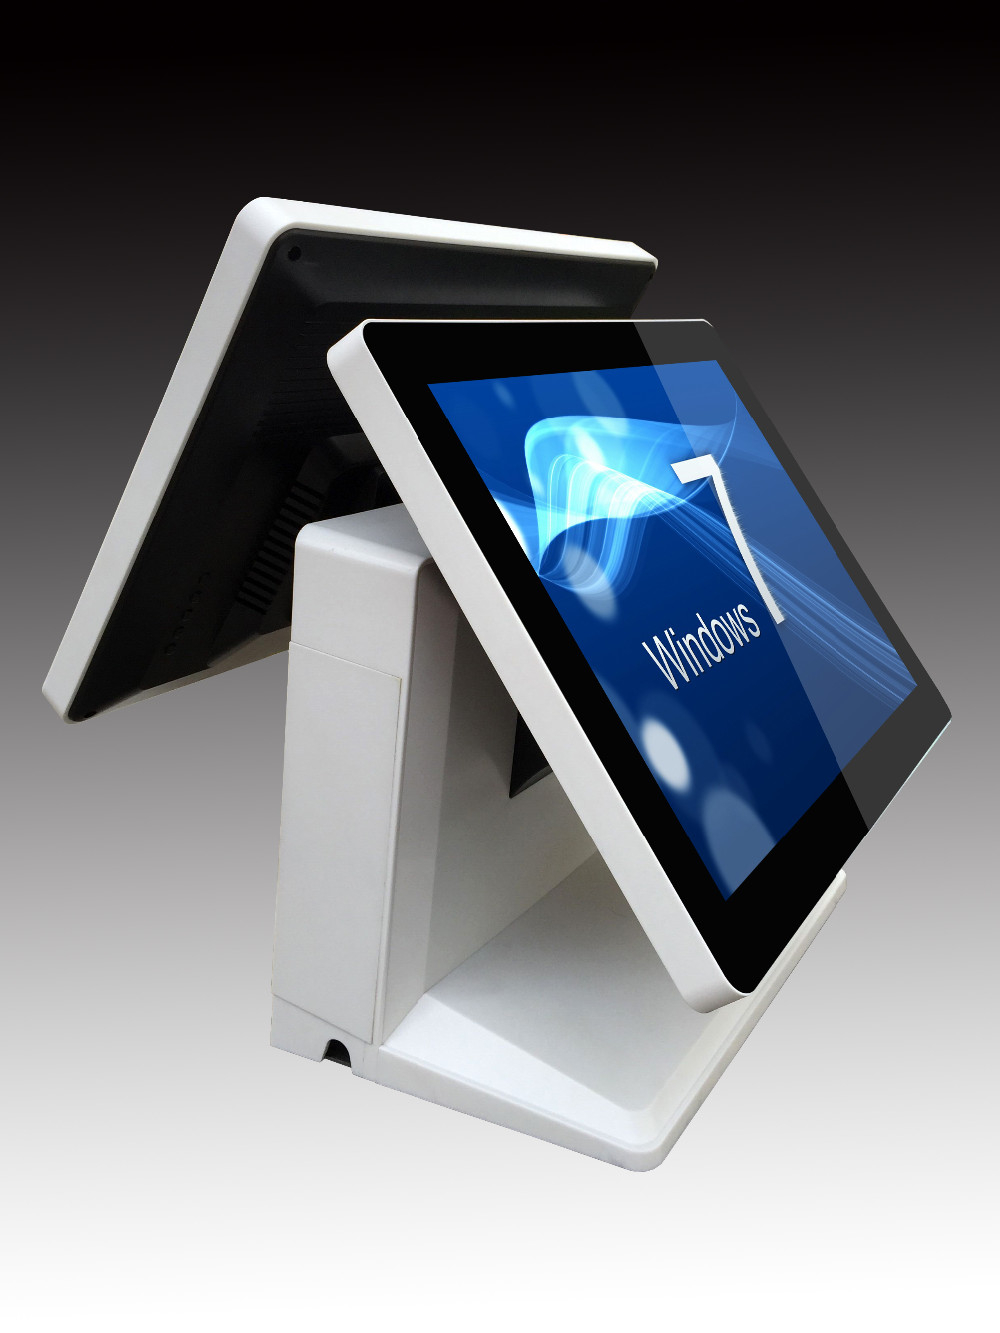 best sell pos system all in one with touch screen/dual screenbest sell pos system all in one with touch screen/dual screen